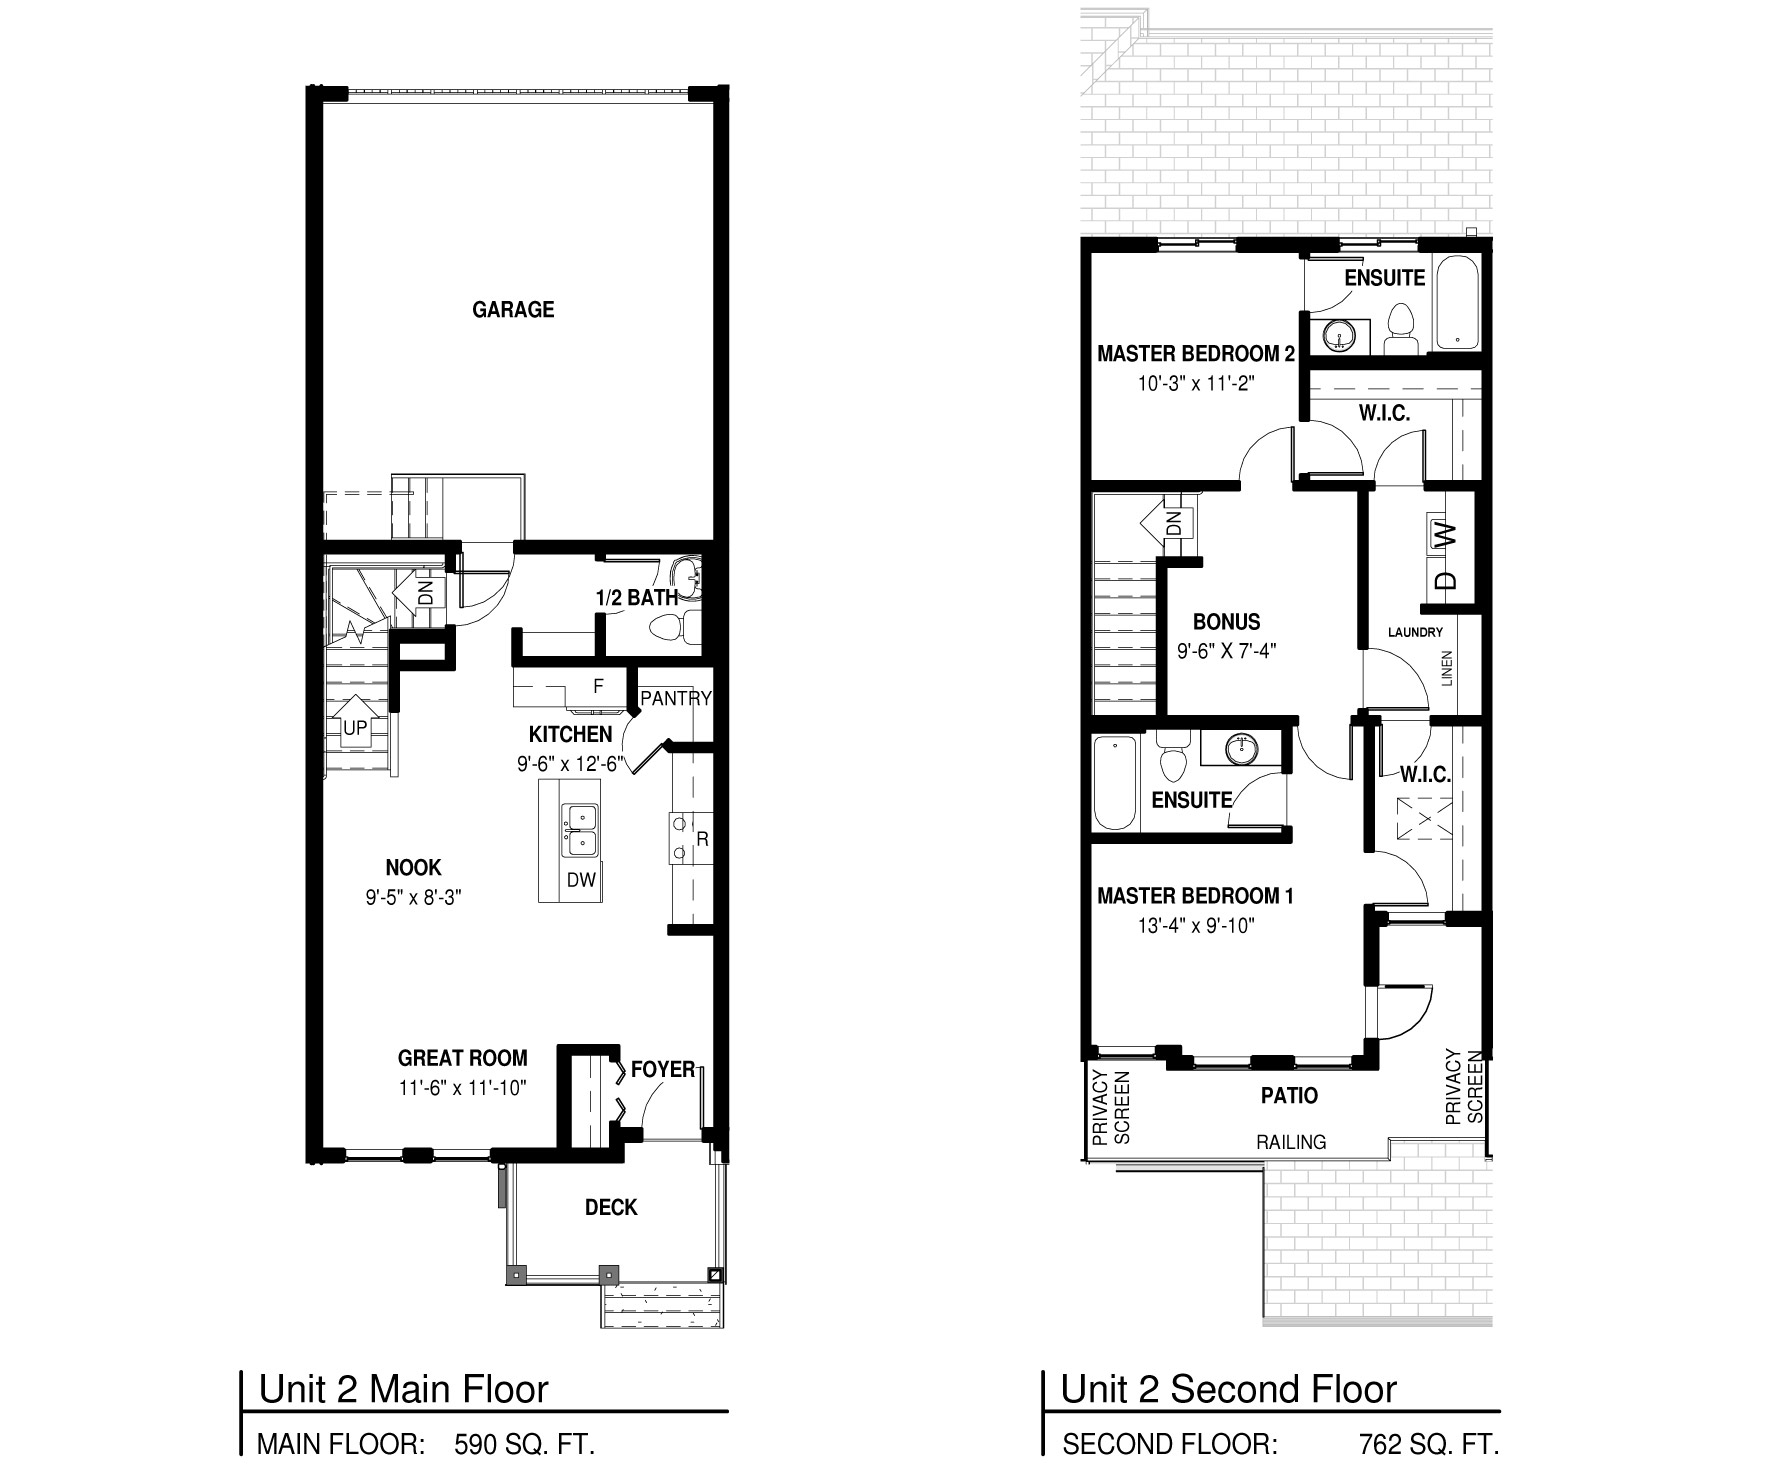 Vue 2 Floorplan